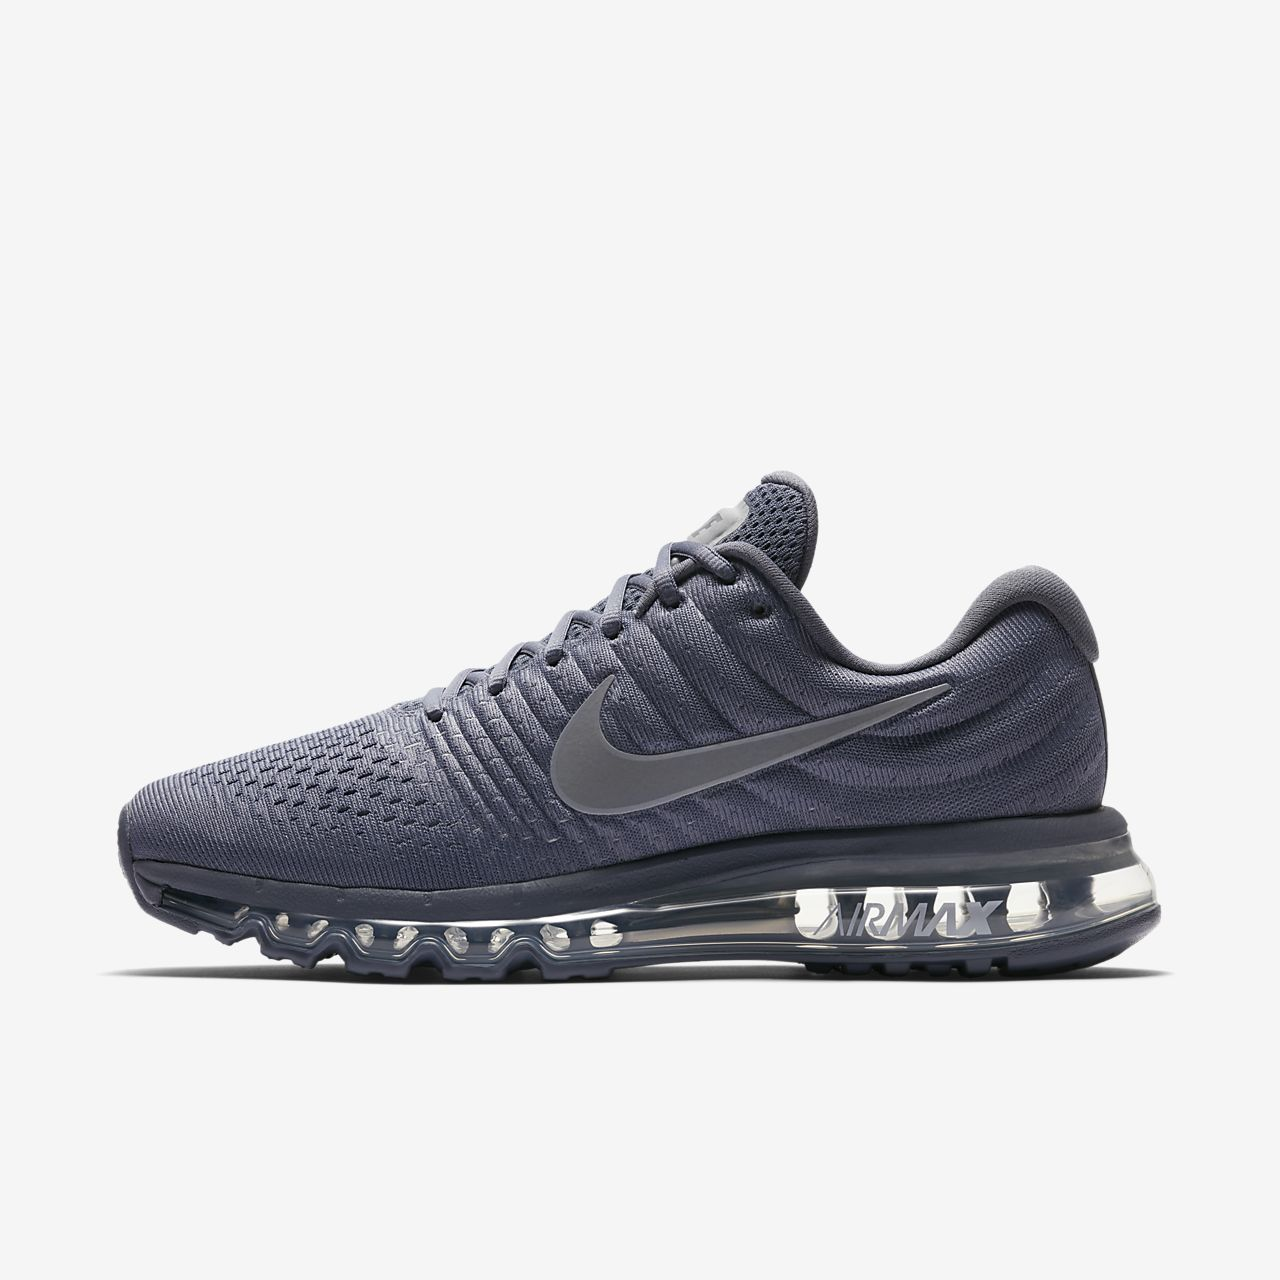 chaussure de running nike air max 2017 se pour homme fr. Black Bedroom Furniture Sets. Home Design Ideas